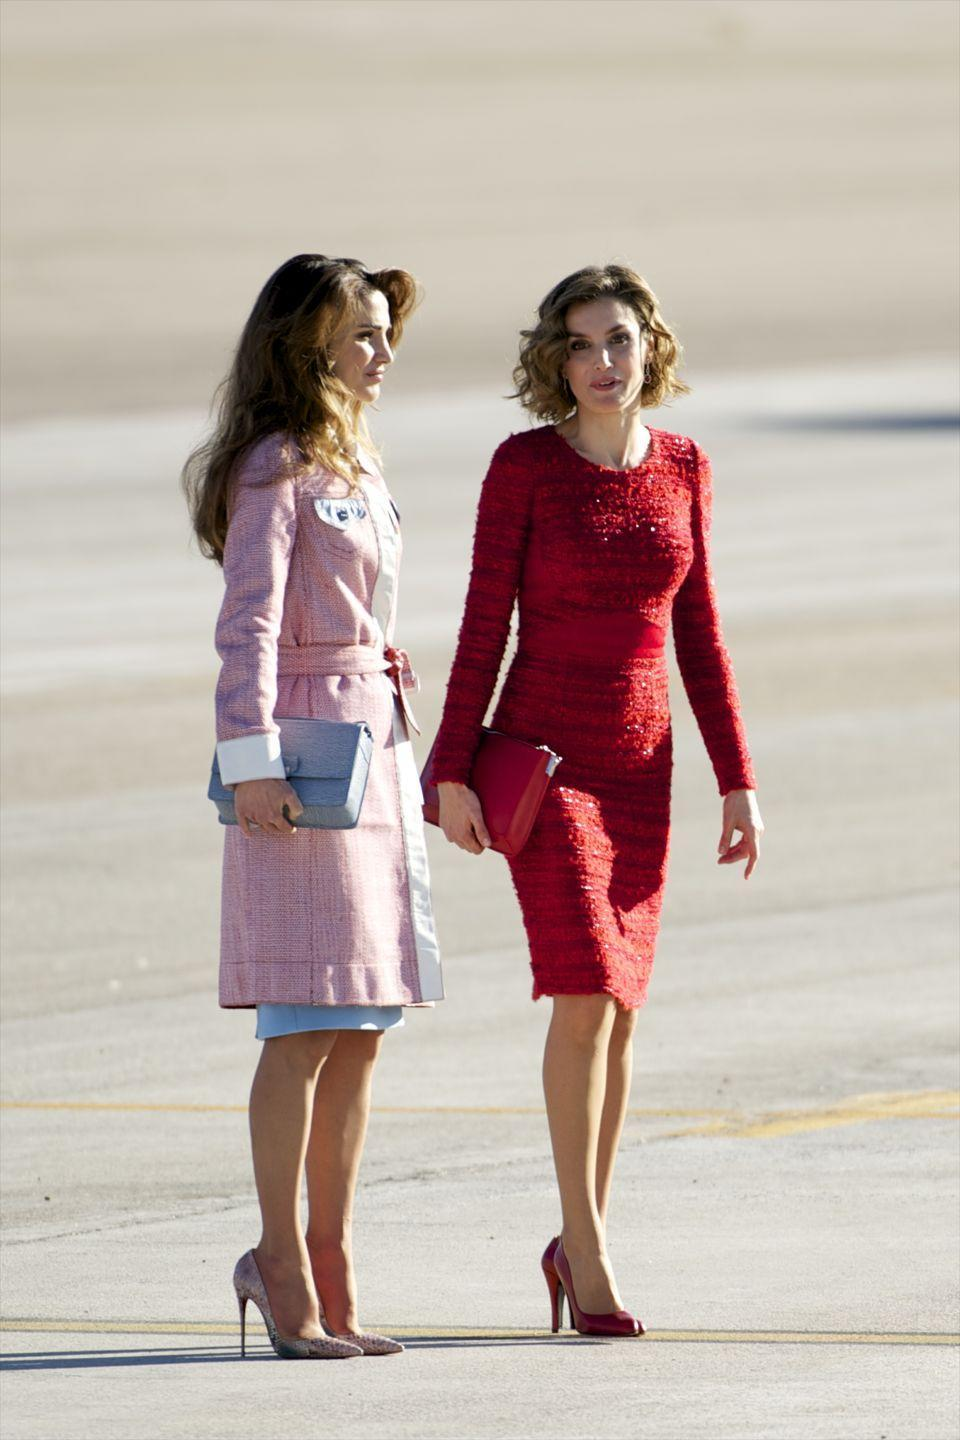 <p>Her Majesty The Queen of the Hashemite Kingdom of Jordan or Queen Rania, as she's often called informally, is the Queen consort of Jordan. Kuwati-born to Palestinian parents, she studied at the American University in Cairo. </p>